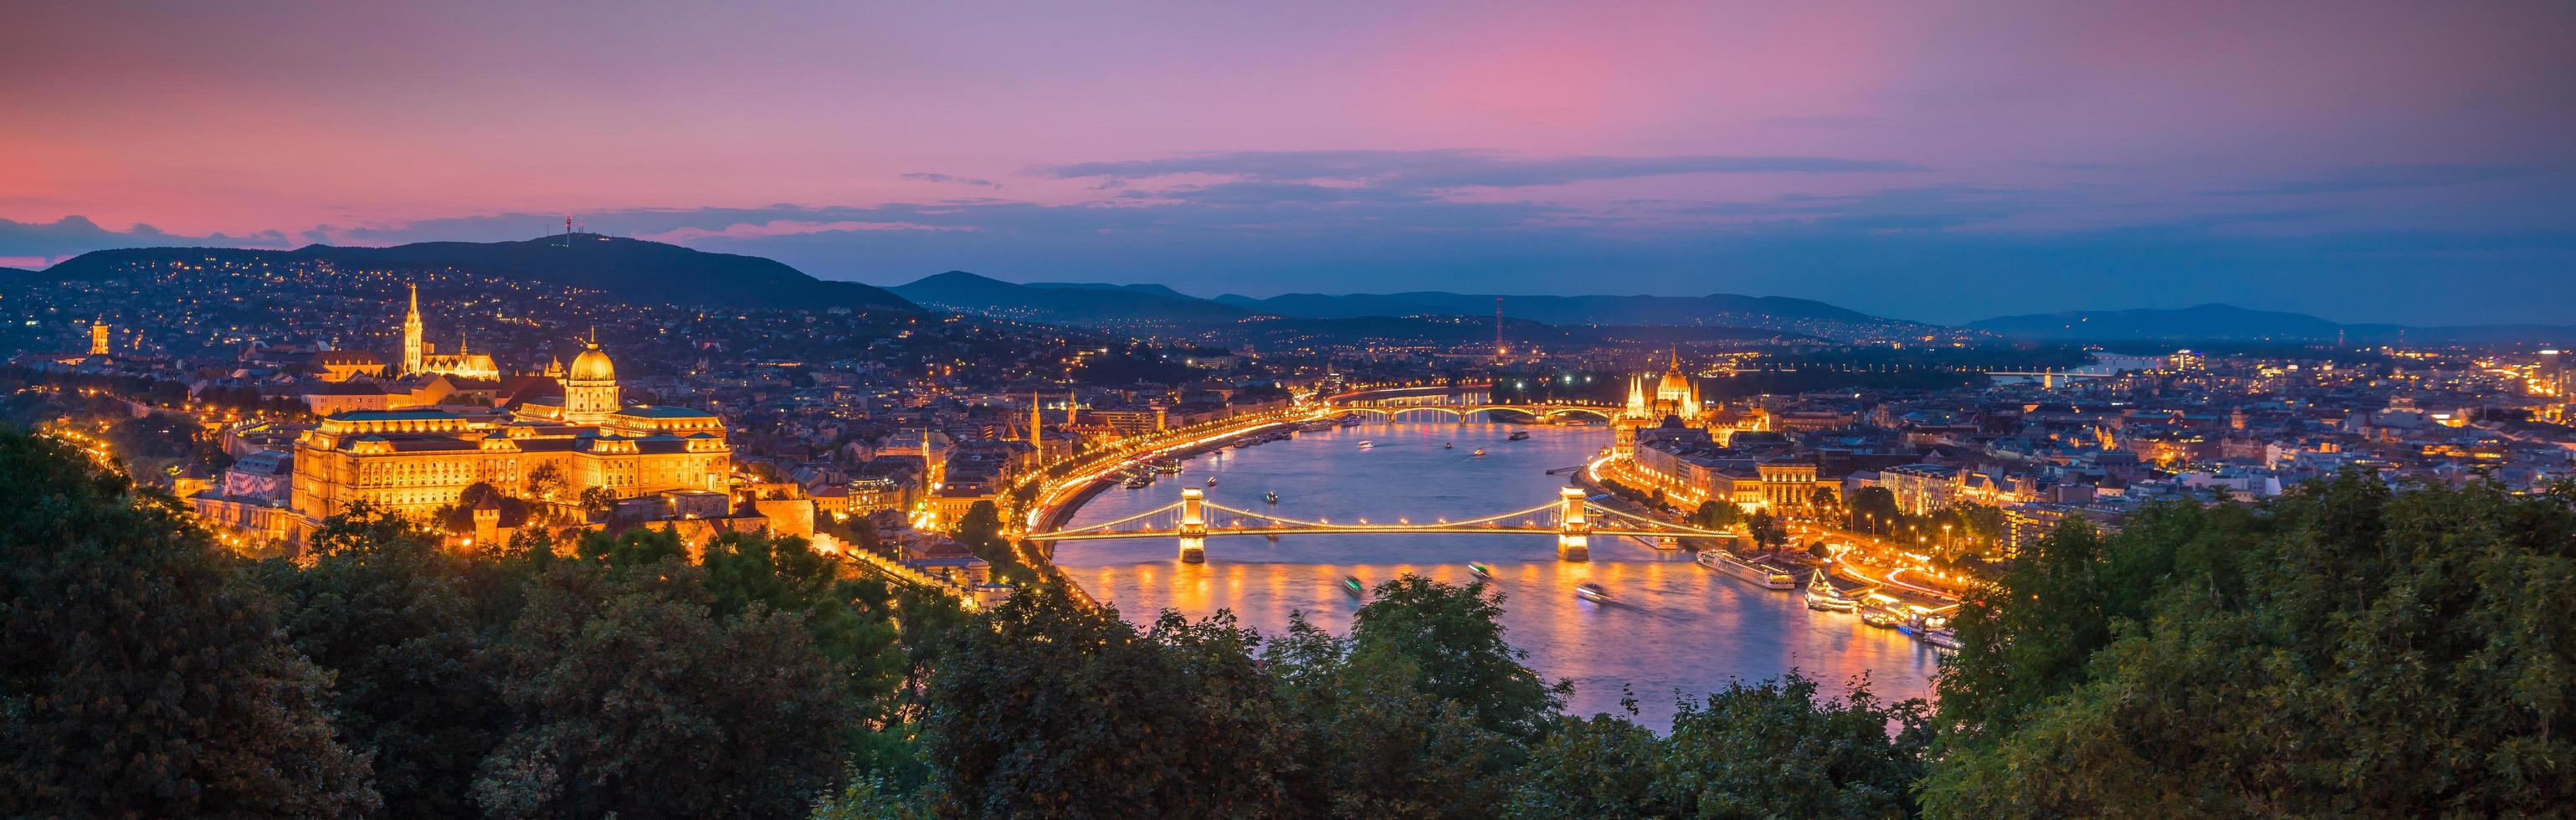 Budapest skyline in Hungary at twilight photo